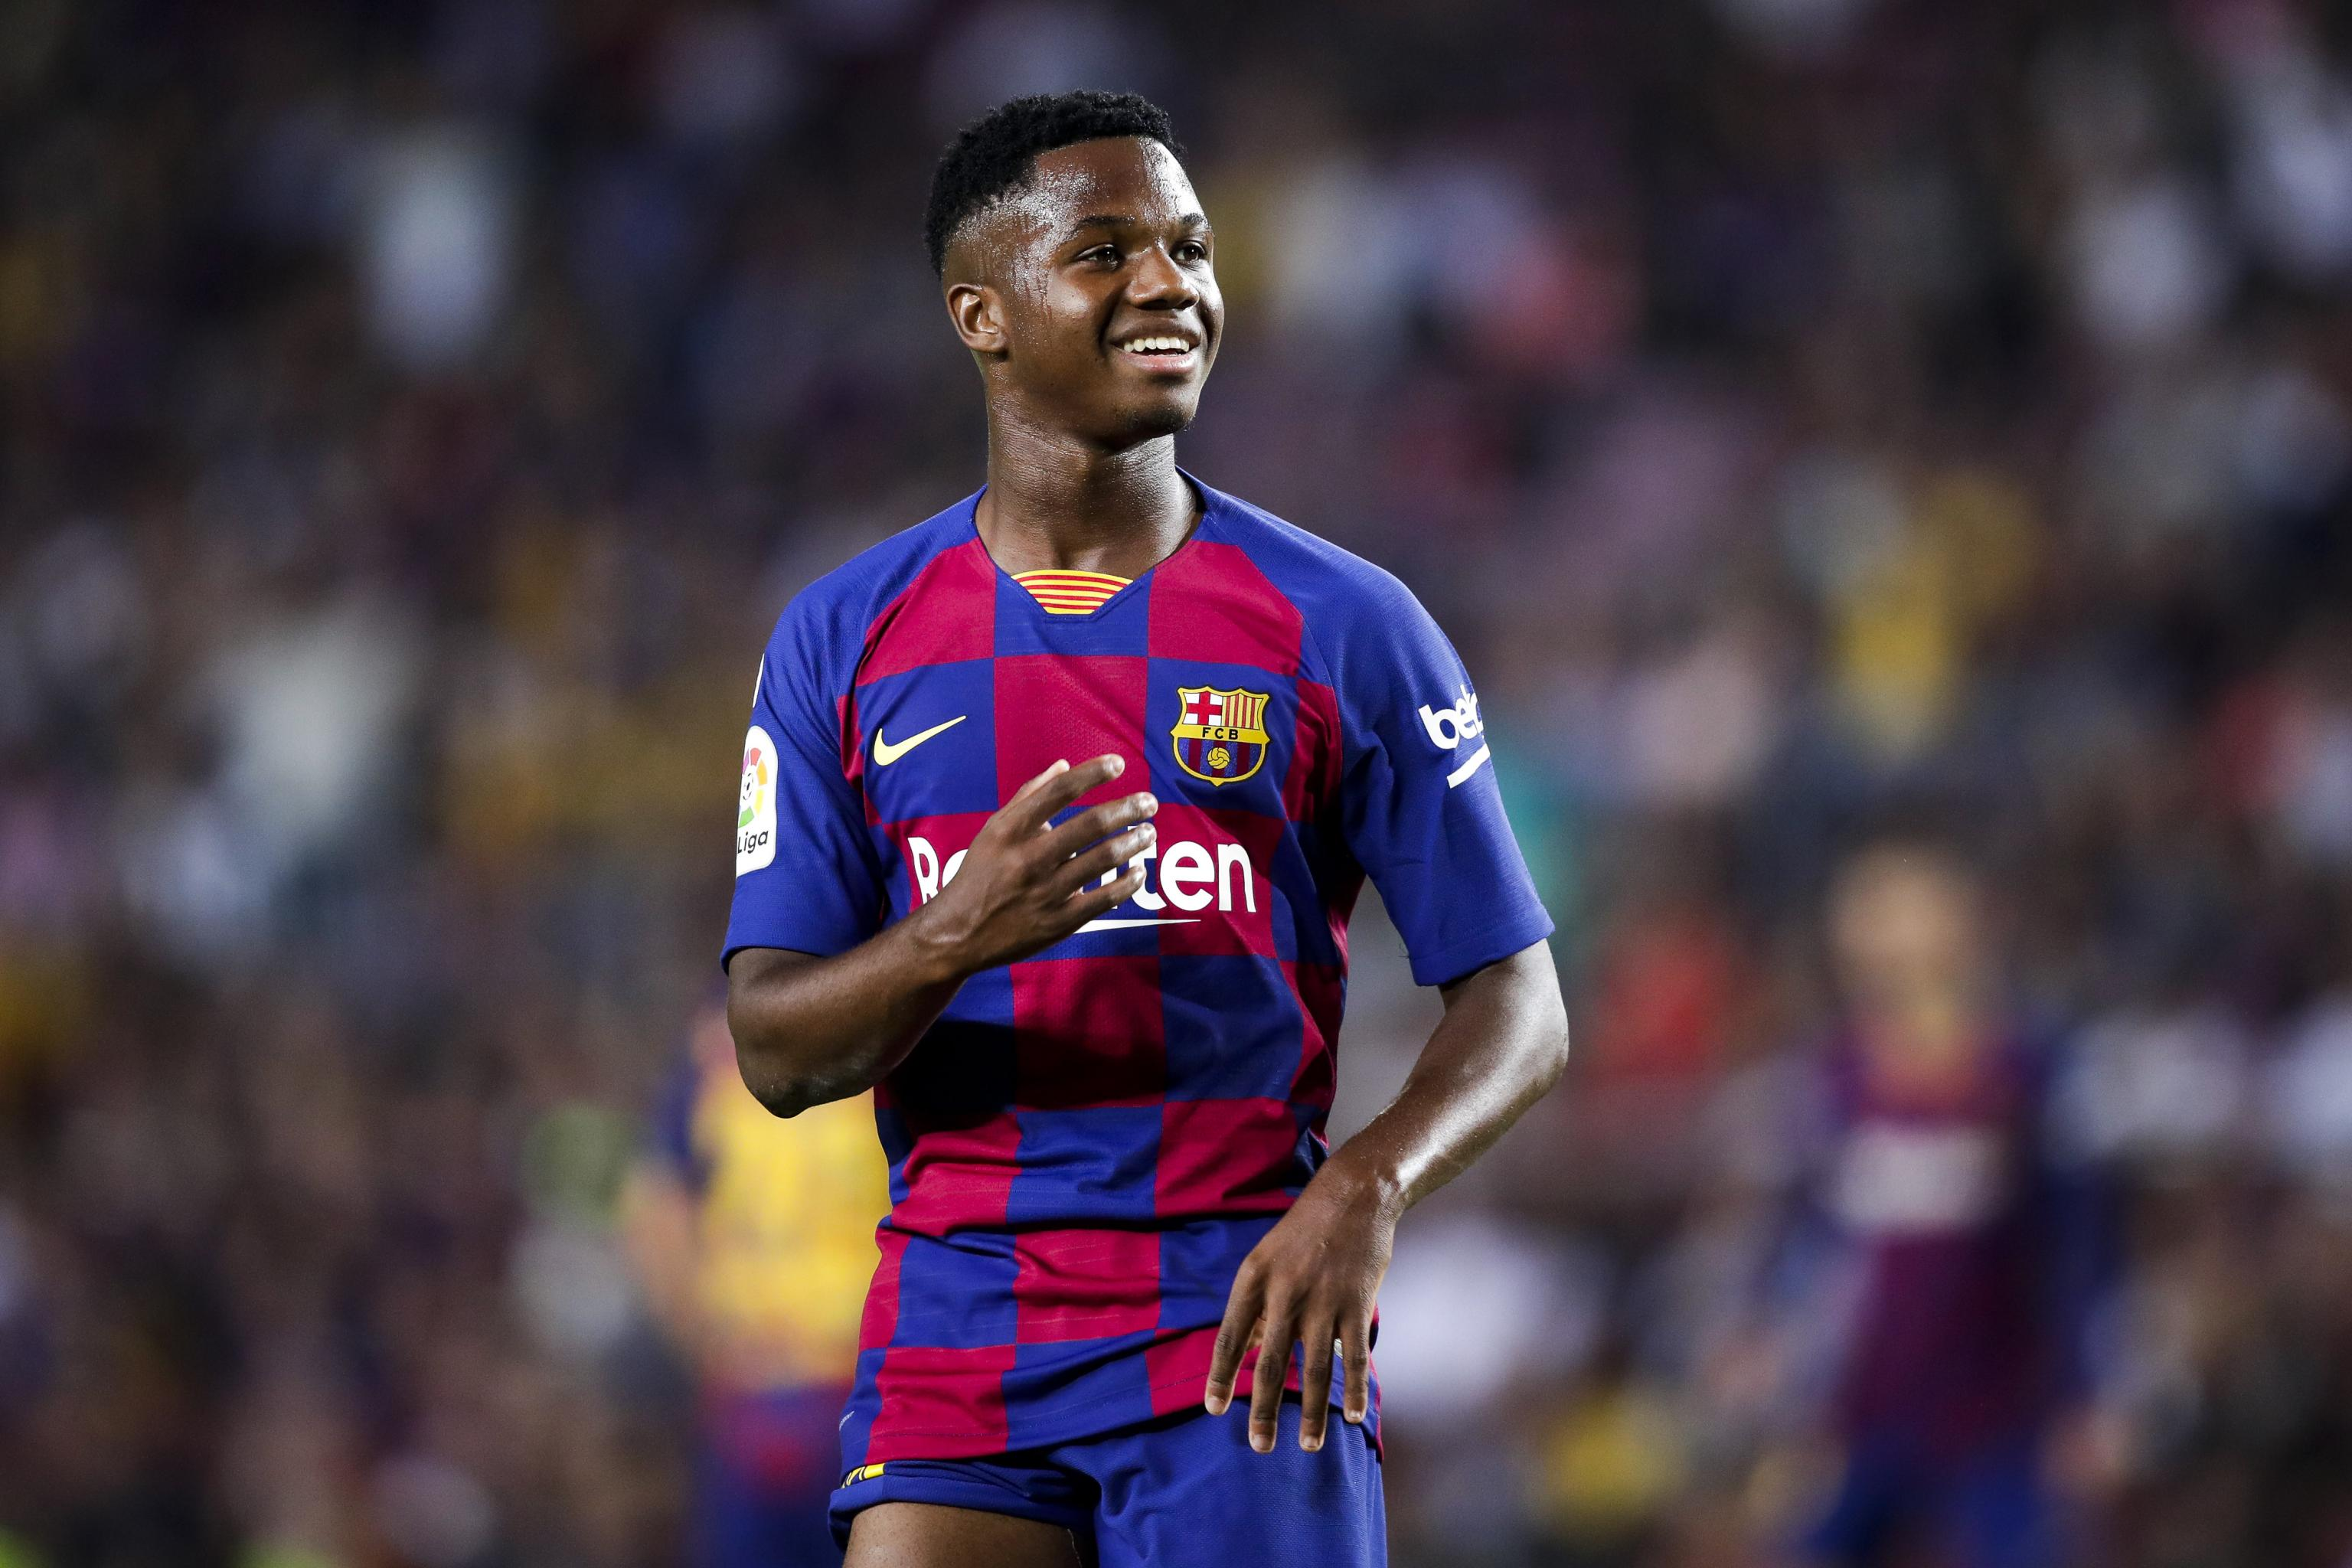 FC Barcelona youth sensation Ansu Fati to play for a National Team?